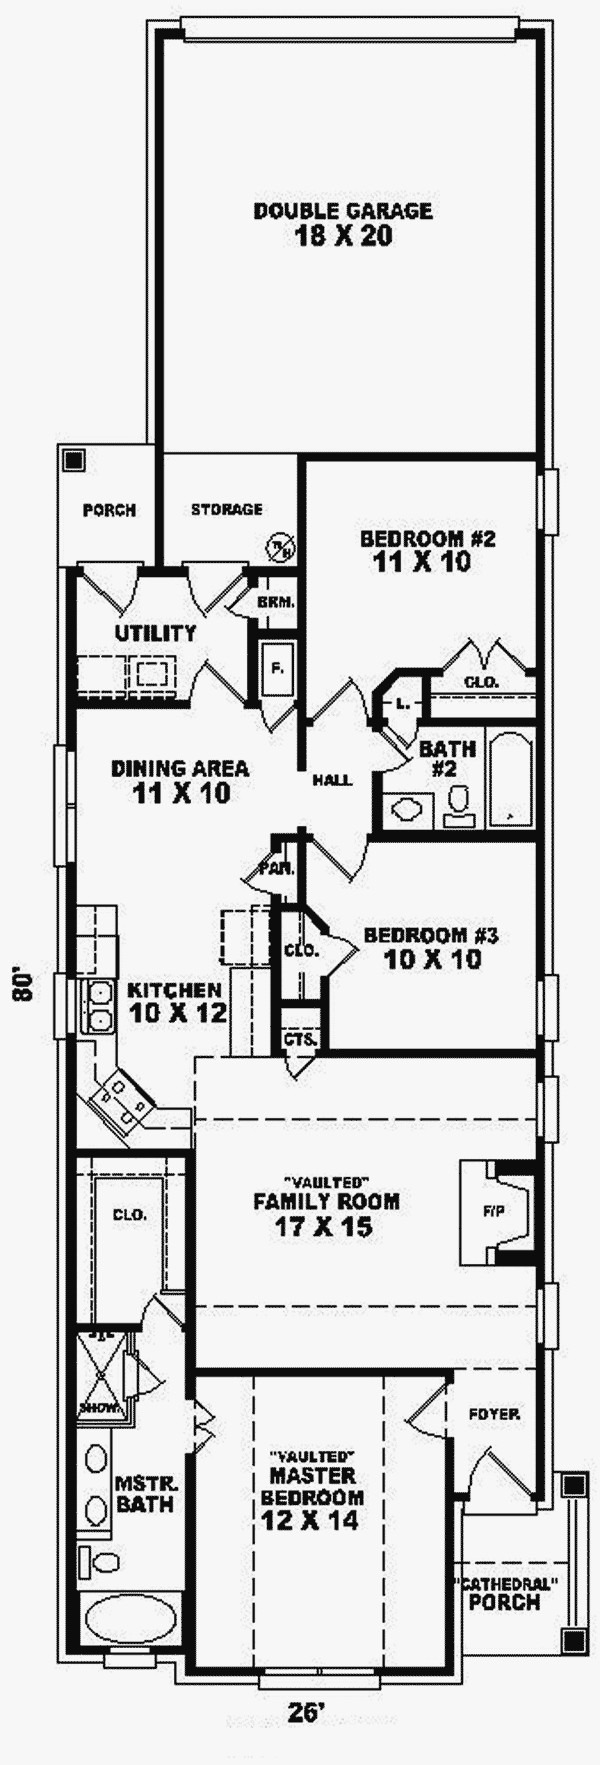 3 storey house plans for small lots new unique 2 story narrow lot plan am